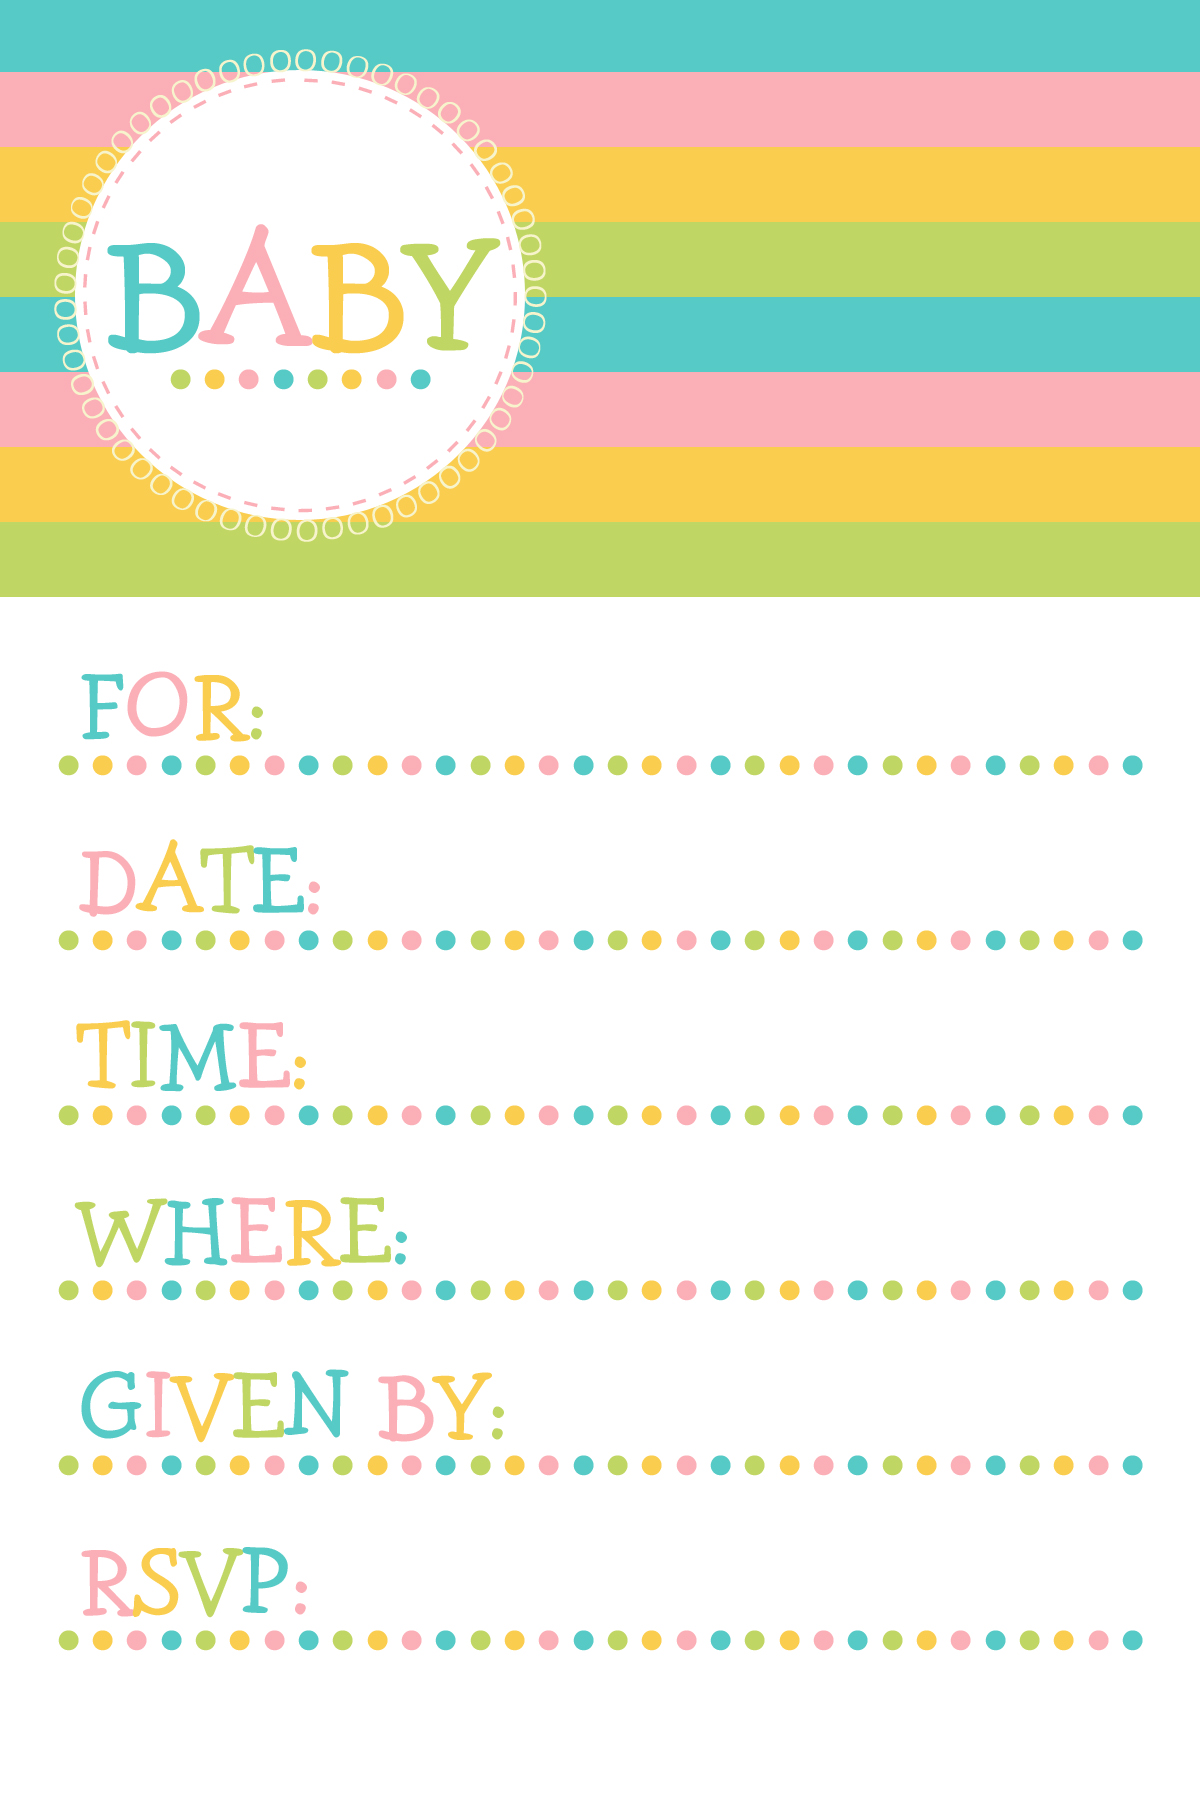 Baby girl clipart simple. Shower invite clipartfox invitations